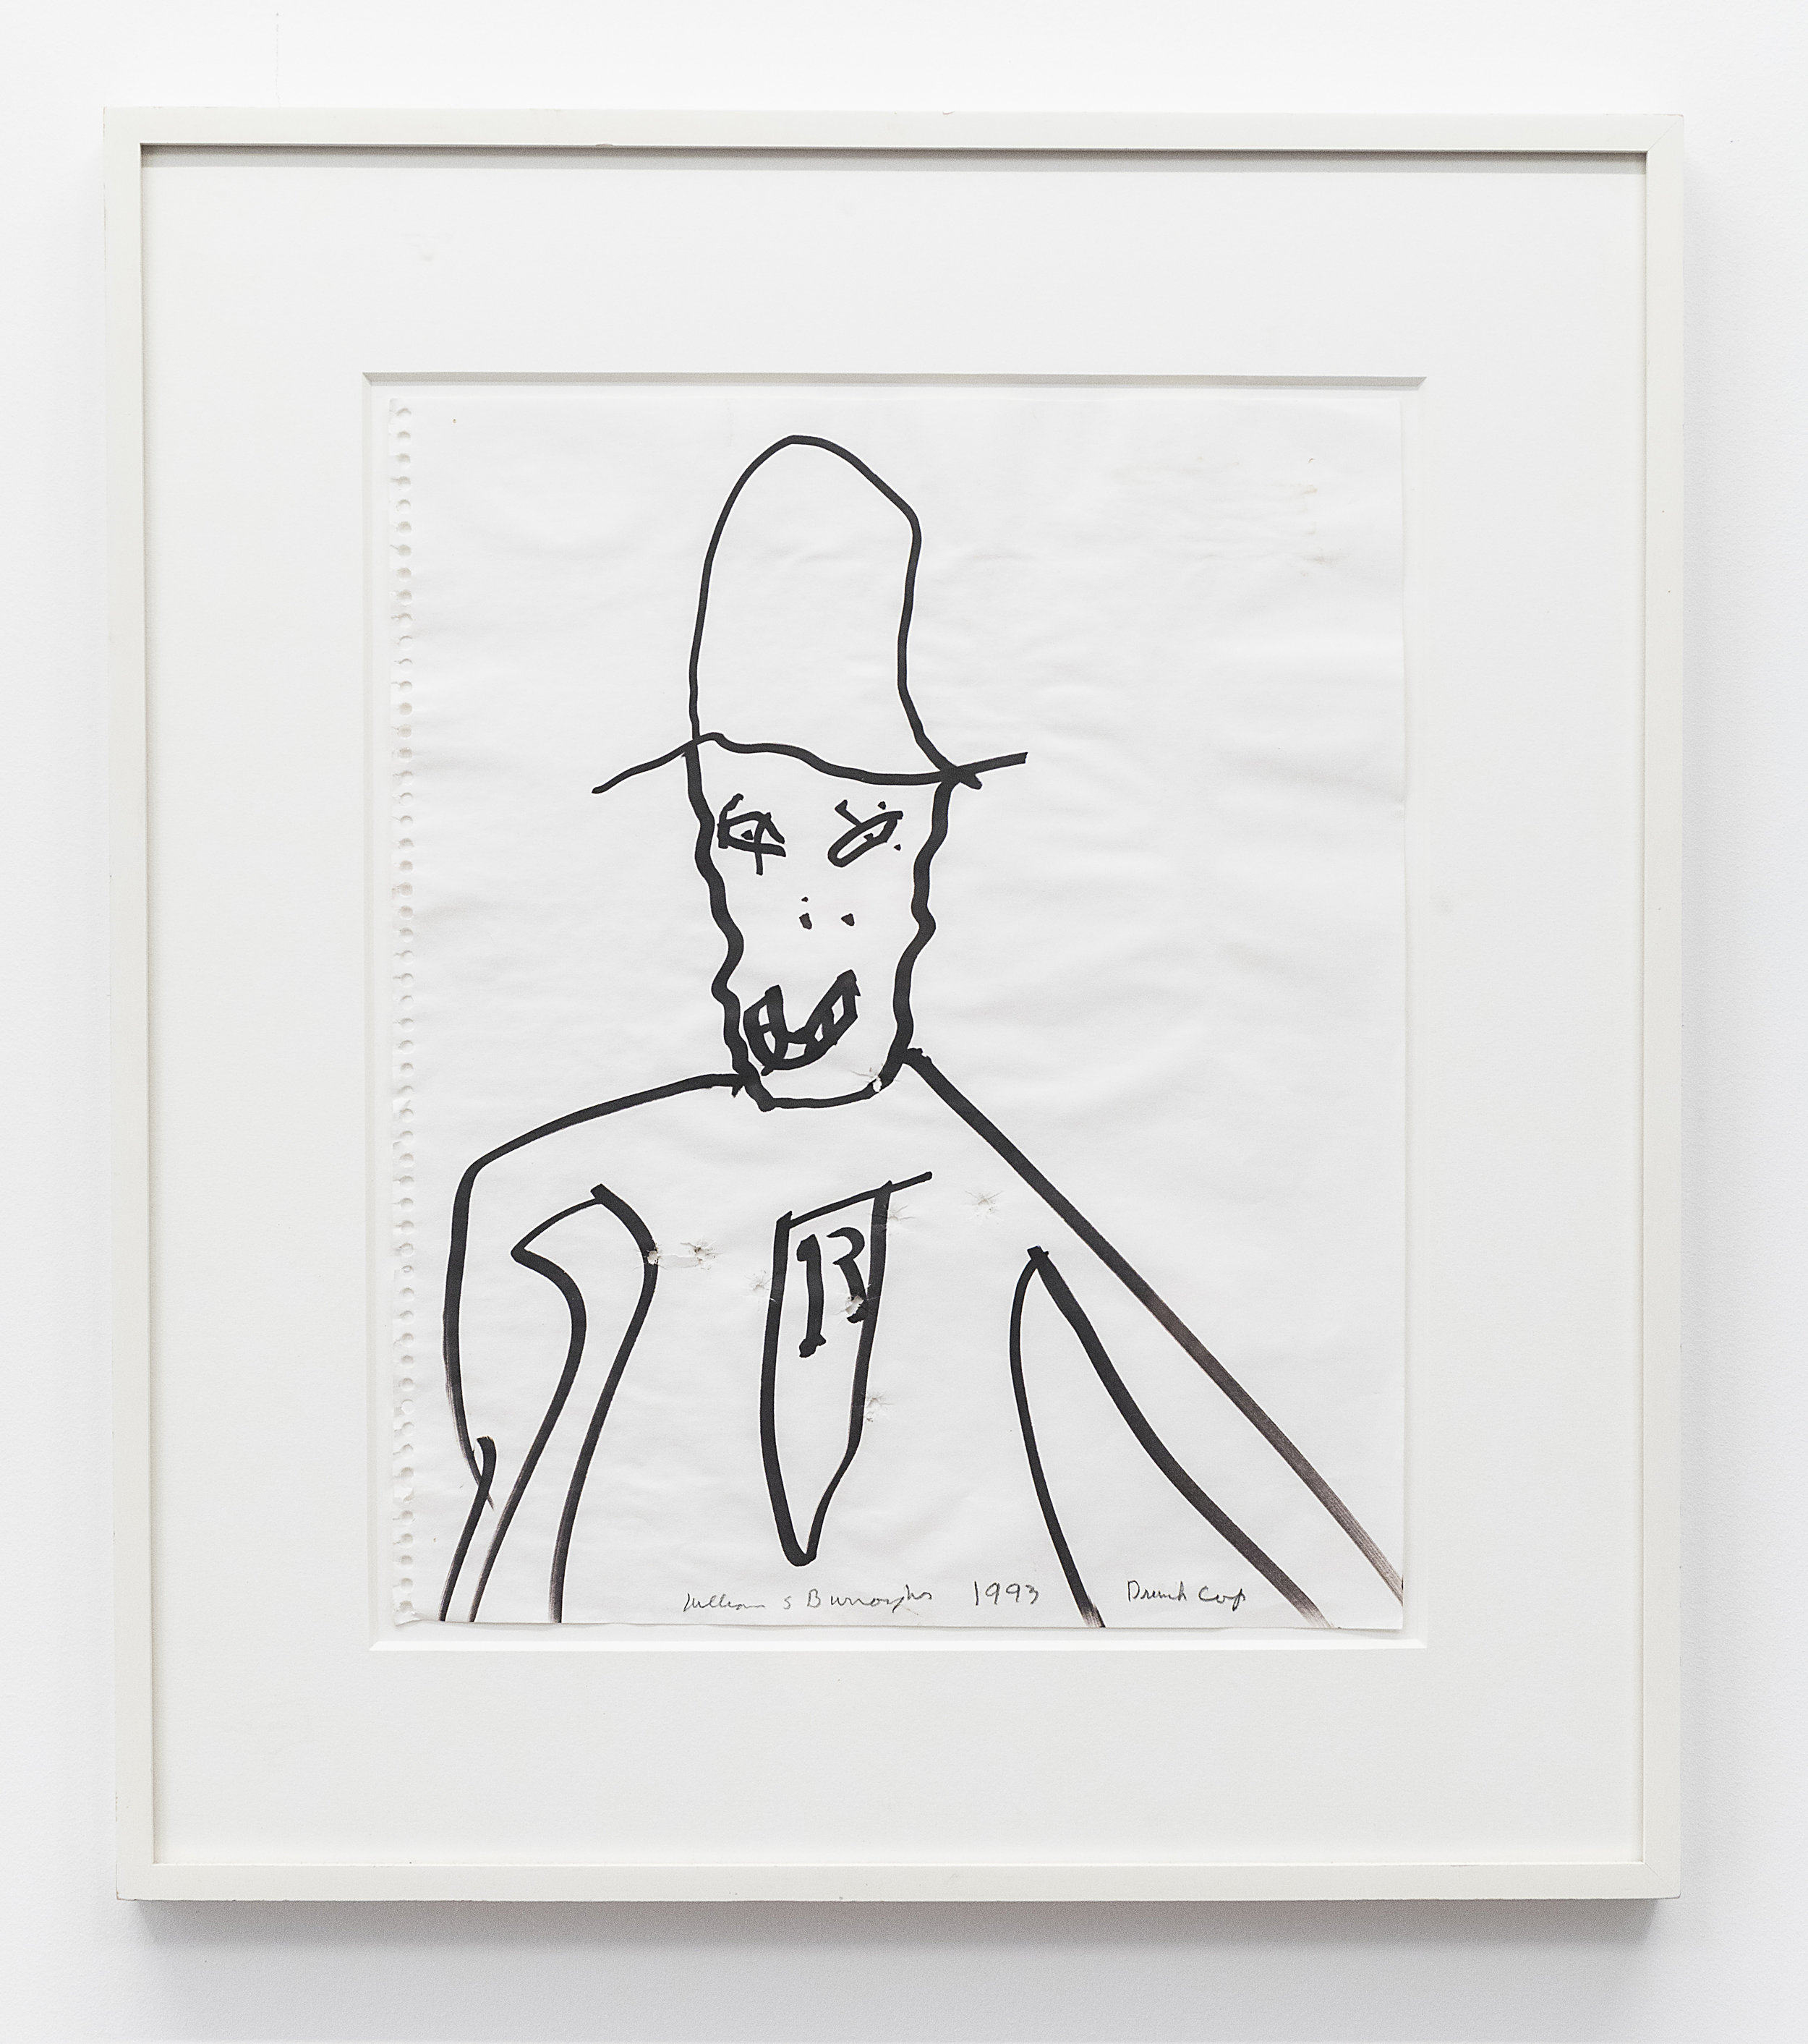 William Burroughs  Drunk Cop  1993 Marker on paper 16 3/4 x 14 inches